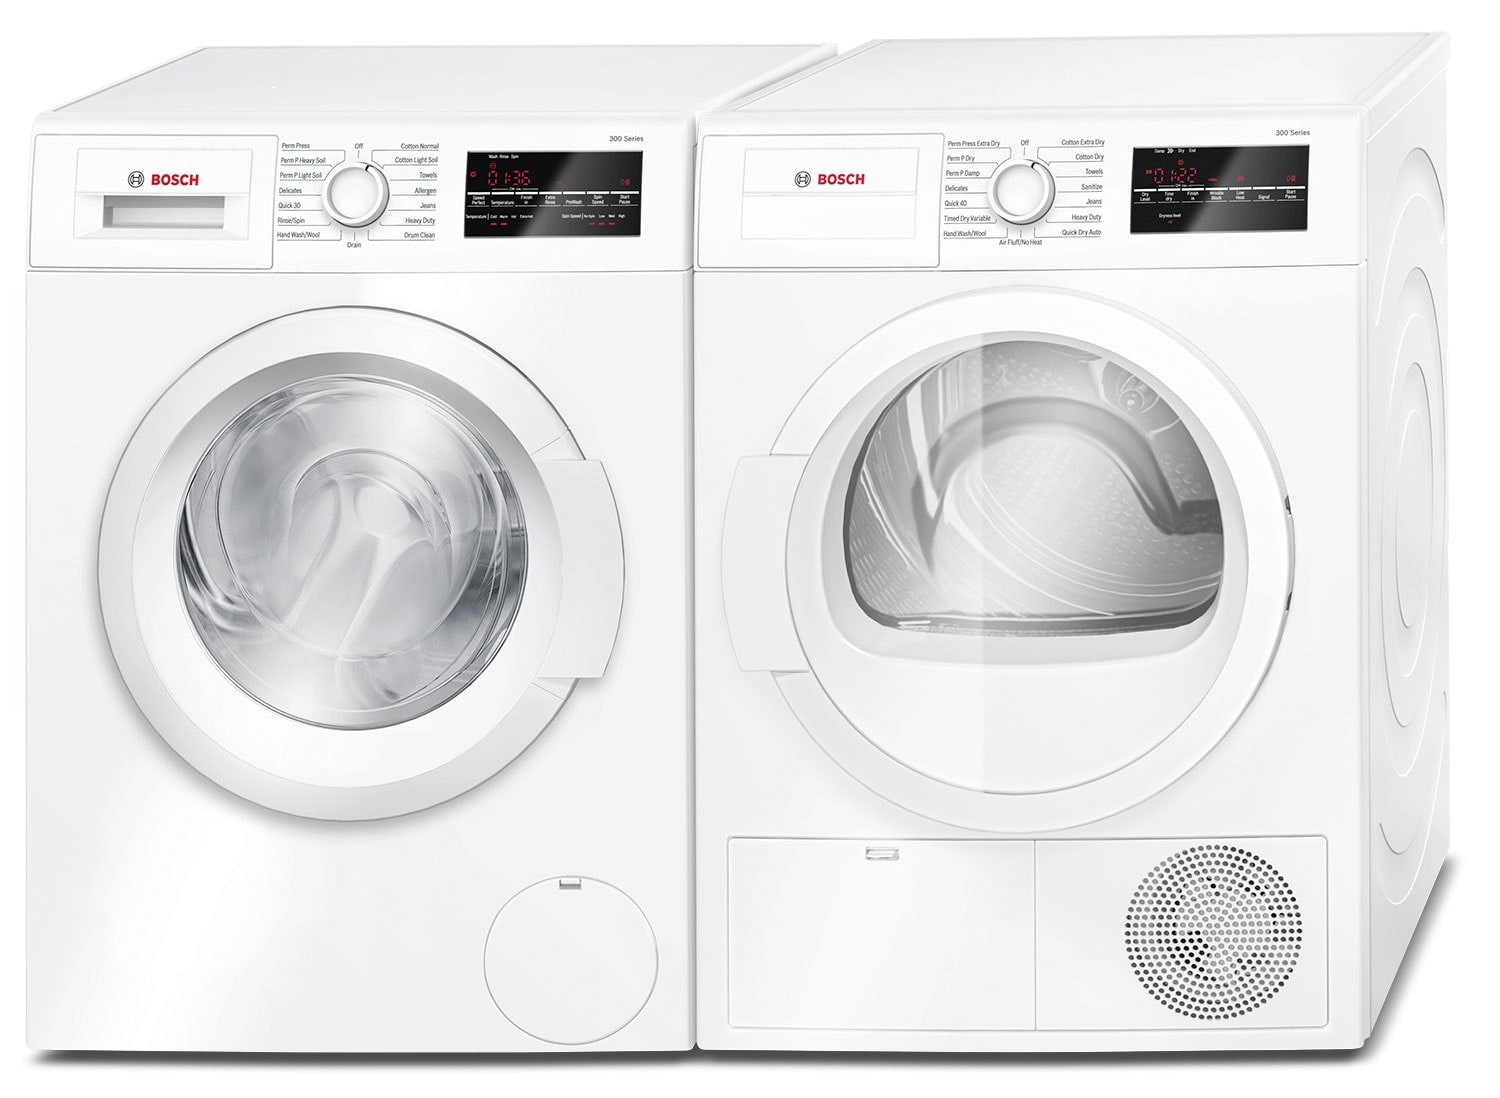 Washers and Dryers - Bosch 2.2 Cu. Ft. Compact Washer and 4.0 Cu. Ft. Compact Condensation Dryer - White